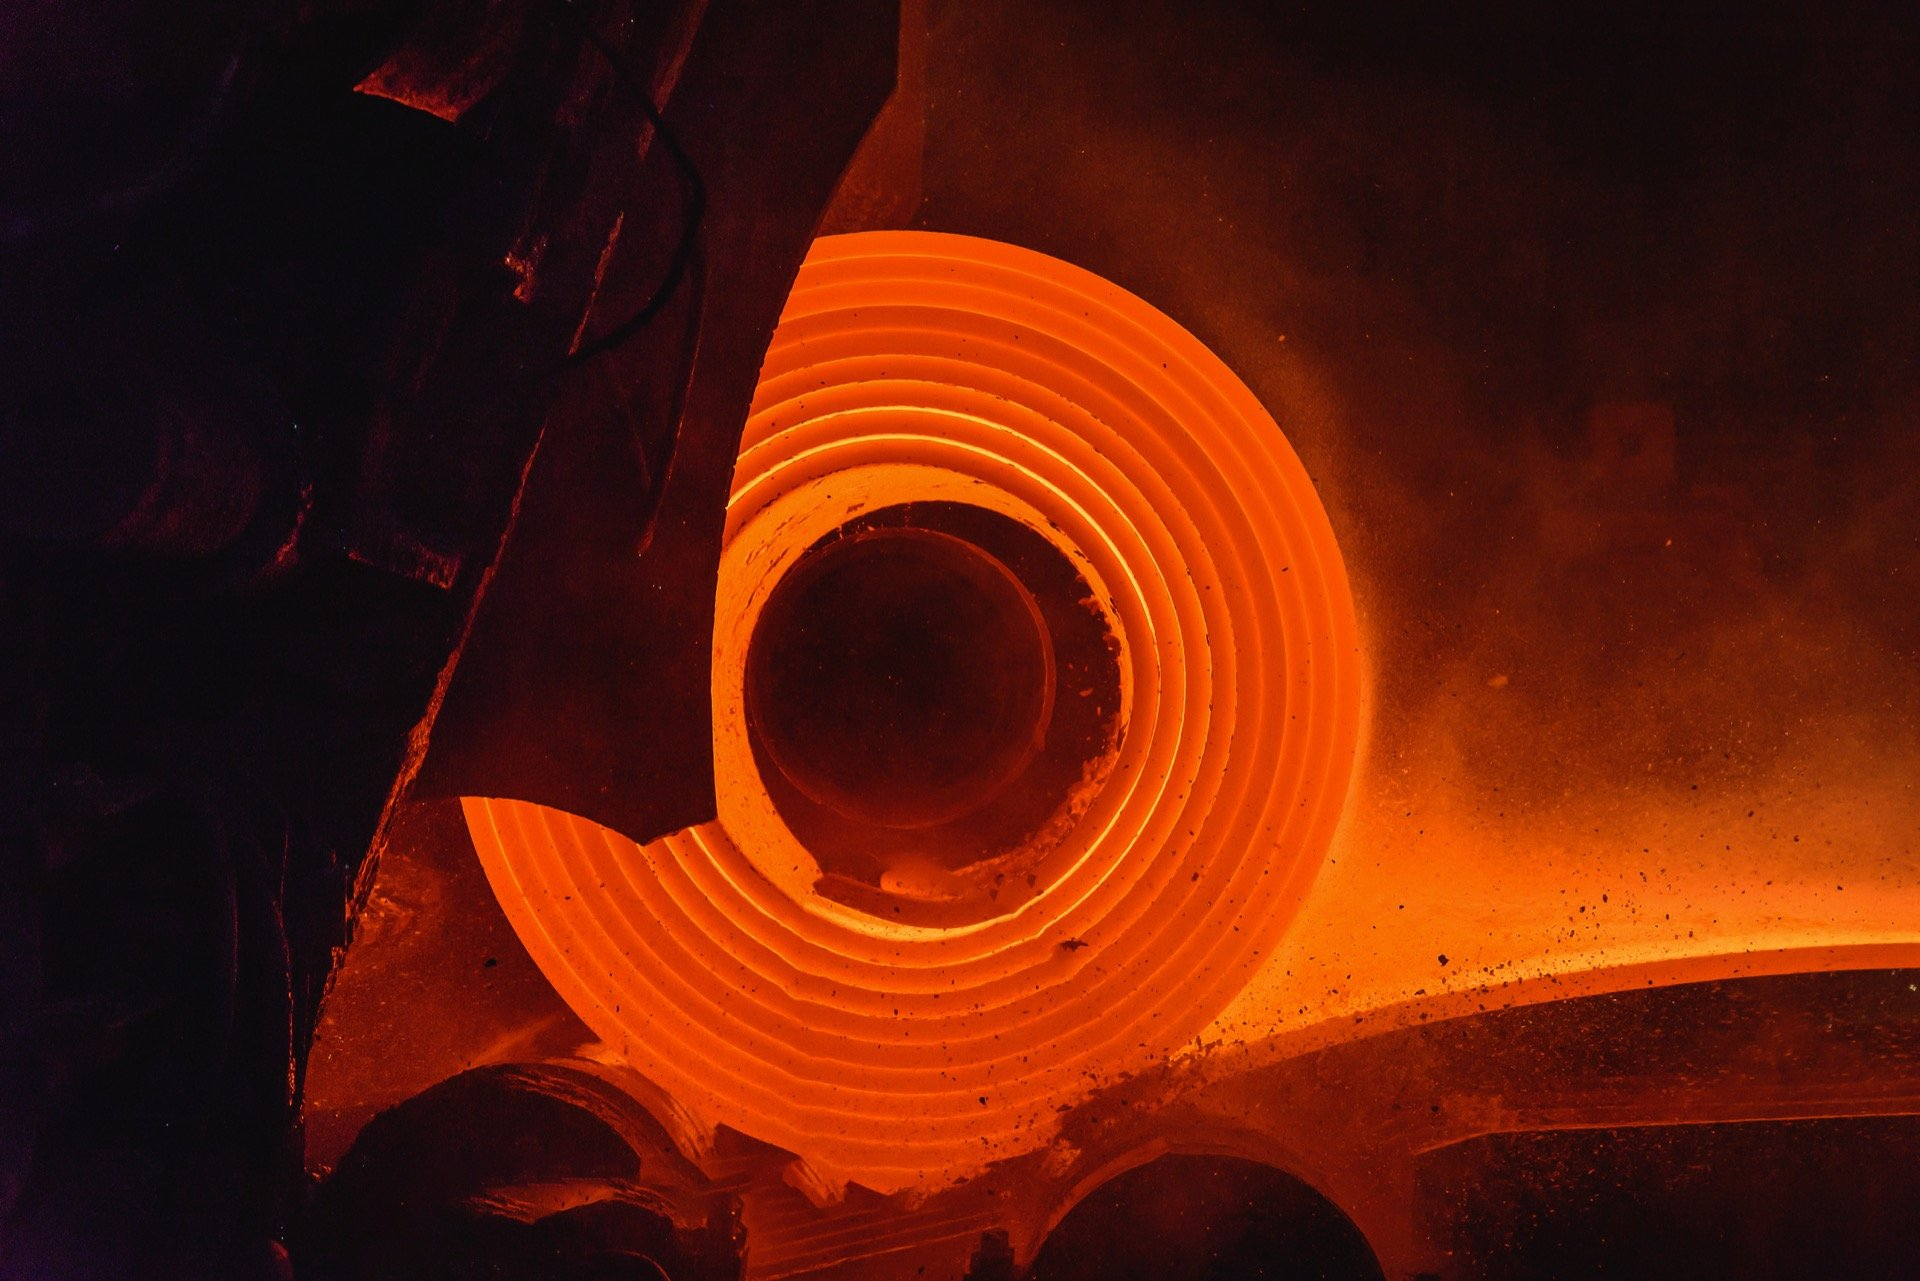 Hot rolled steel being coiled